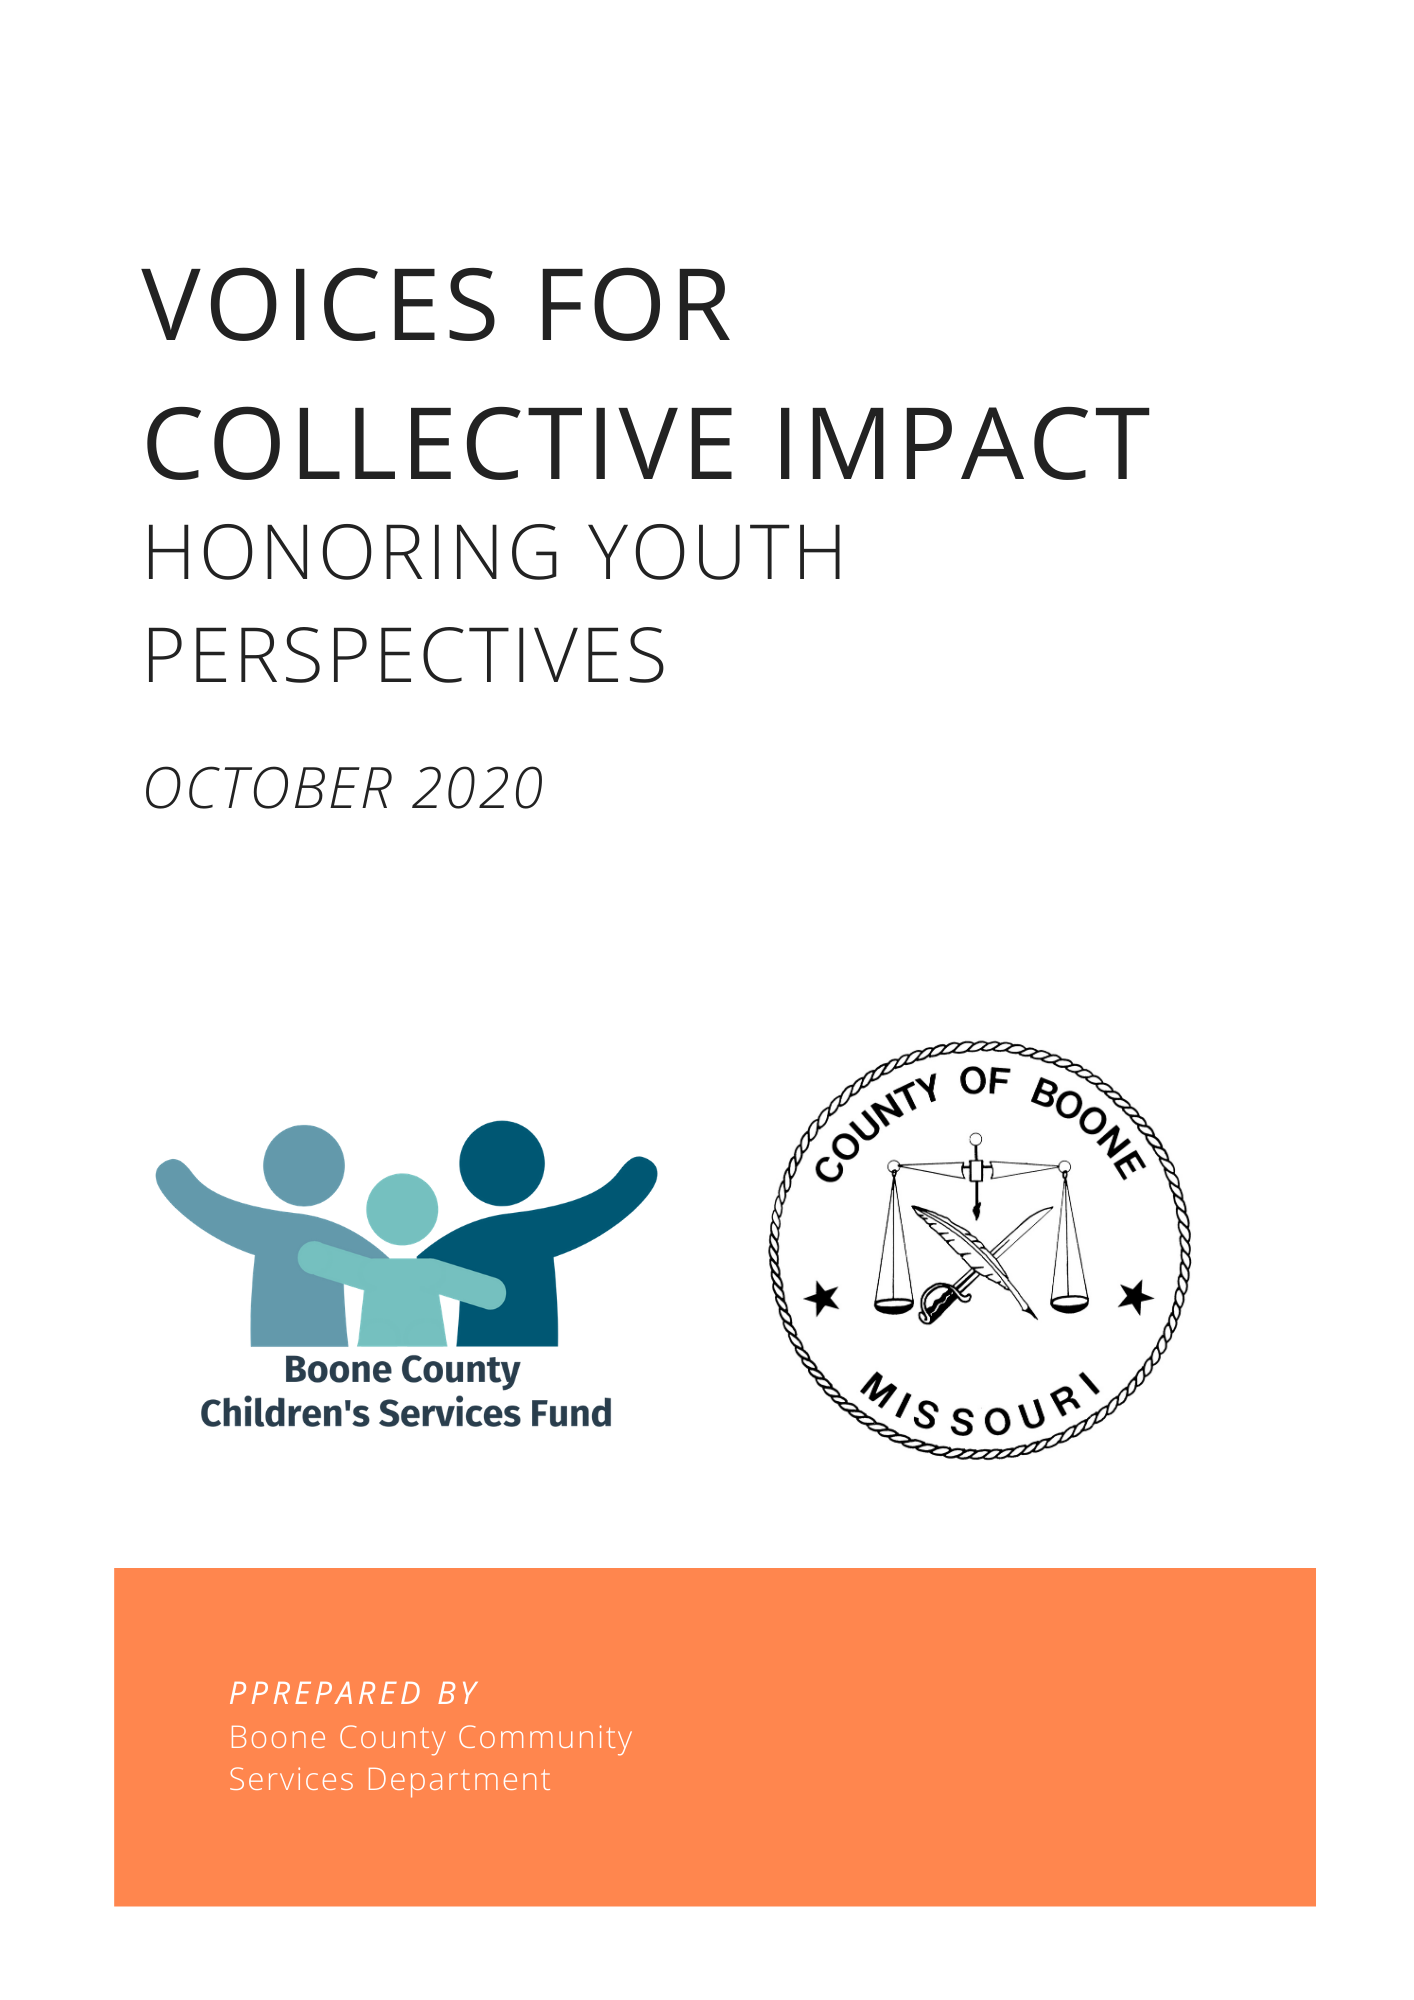 Voices for Collective Impact - Honoring Youth Perspectives Report - October 2020